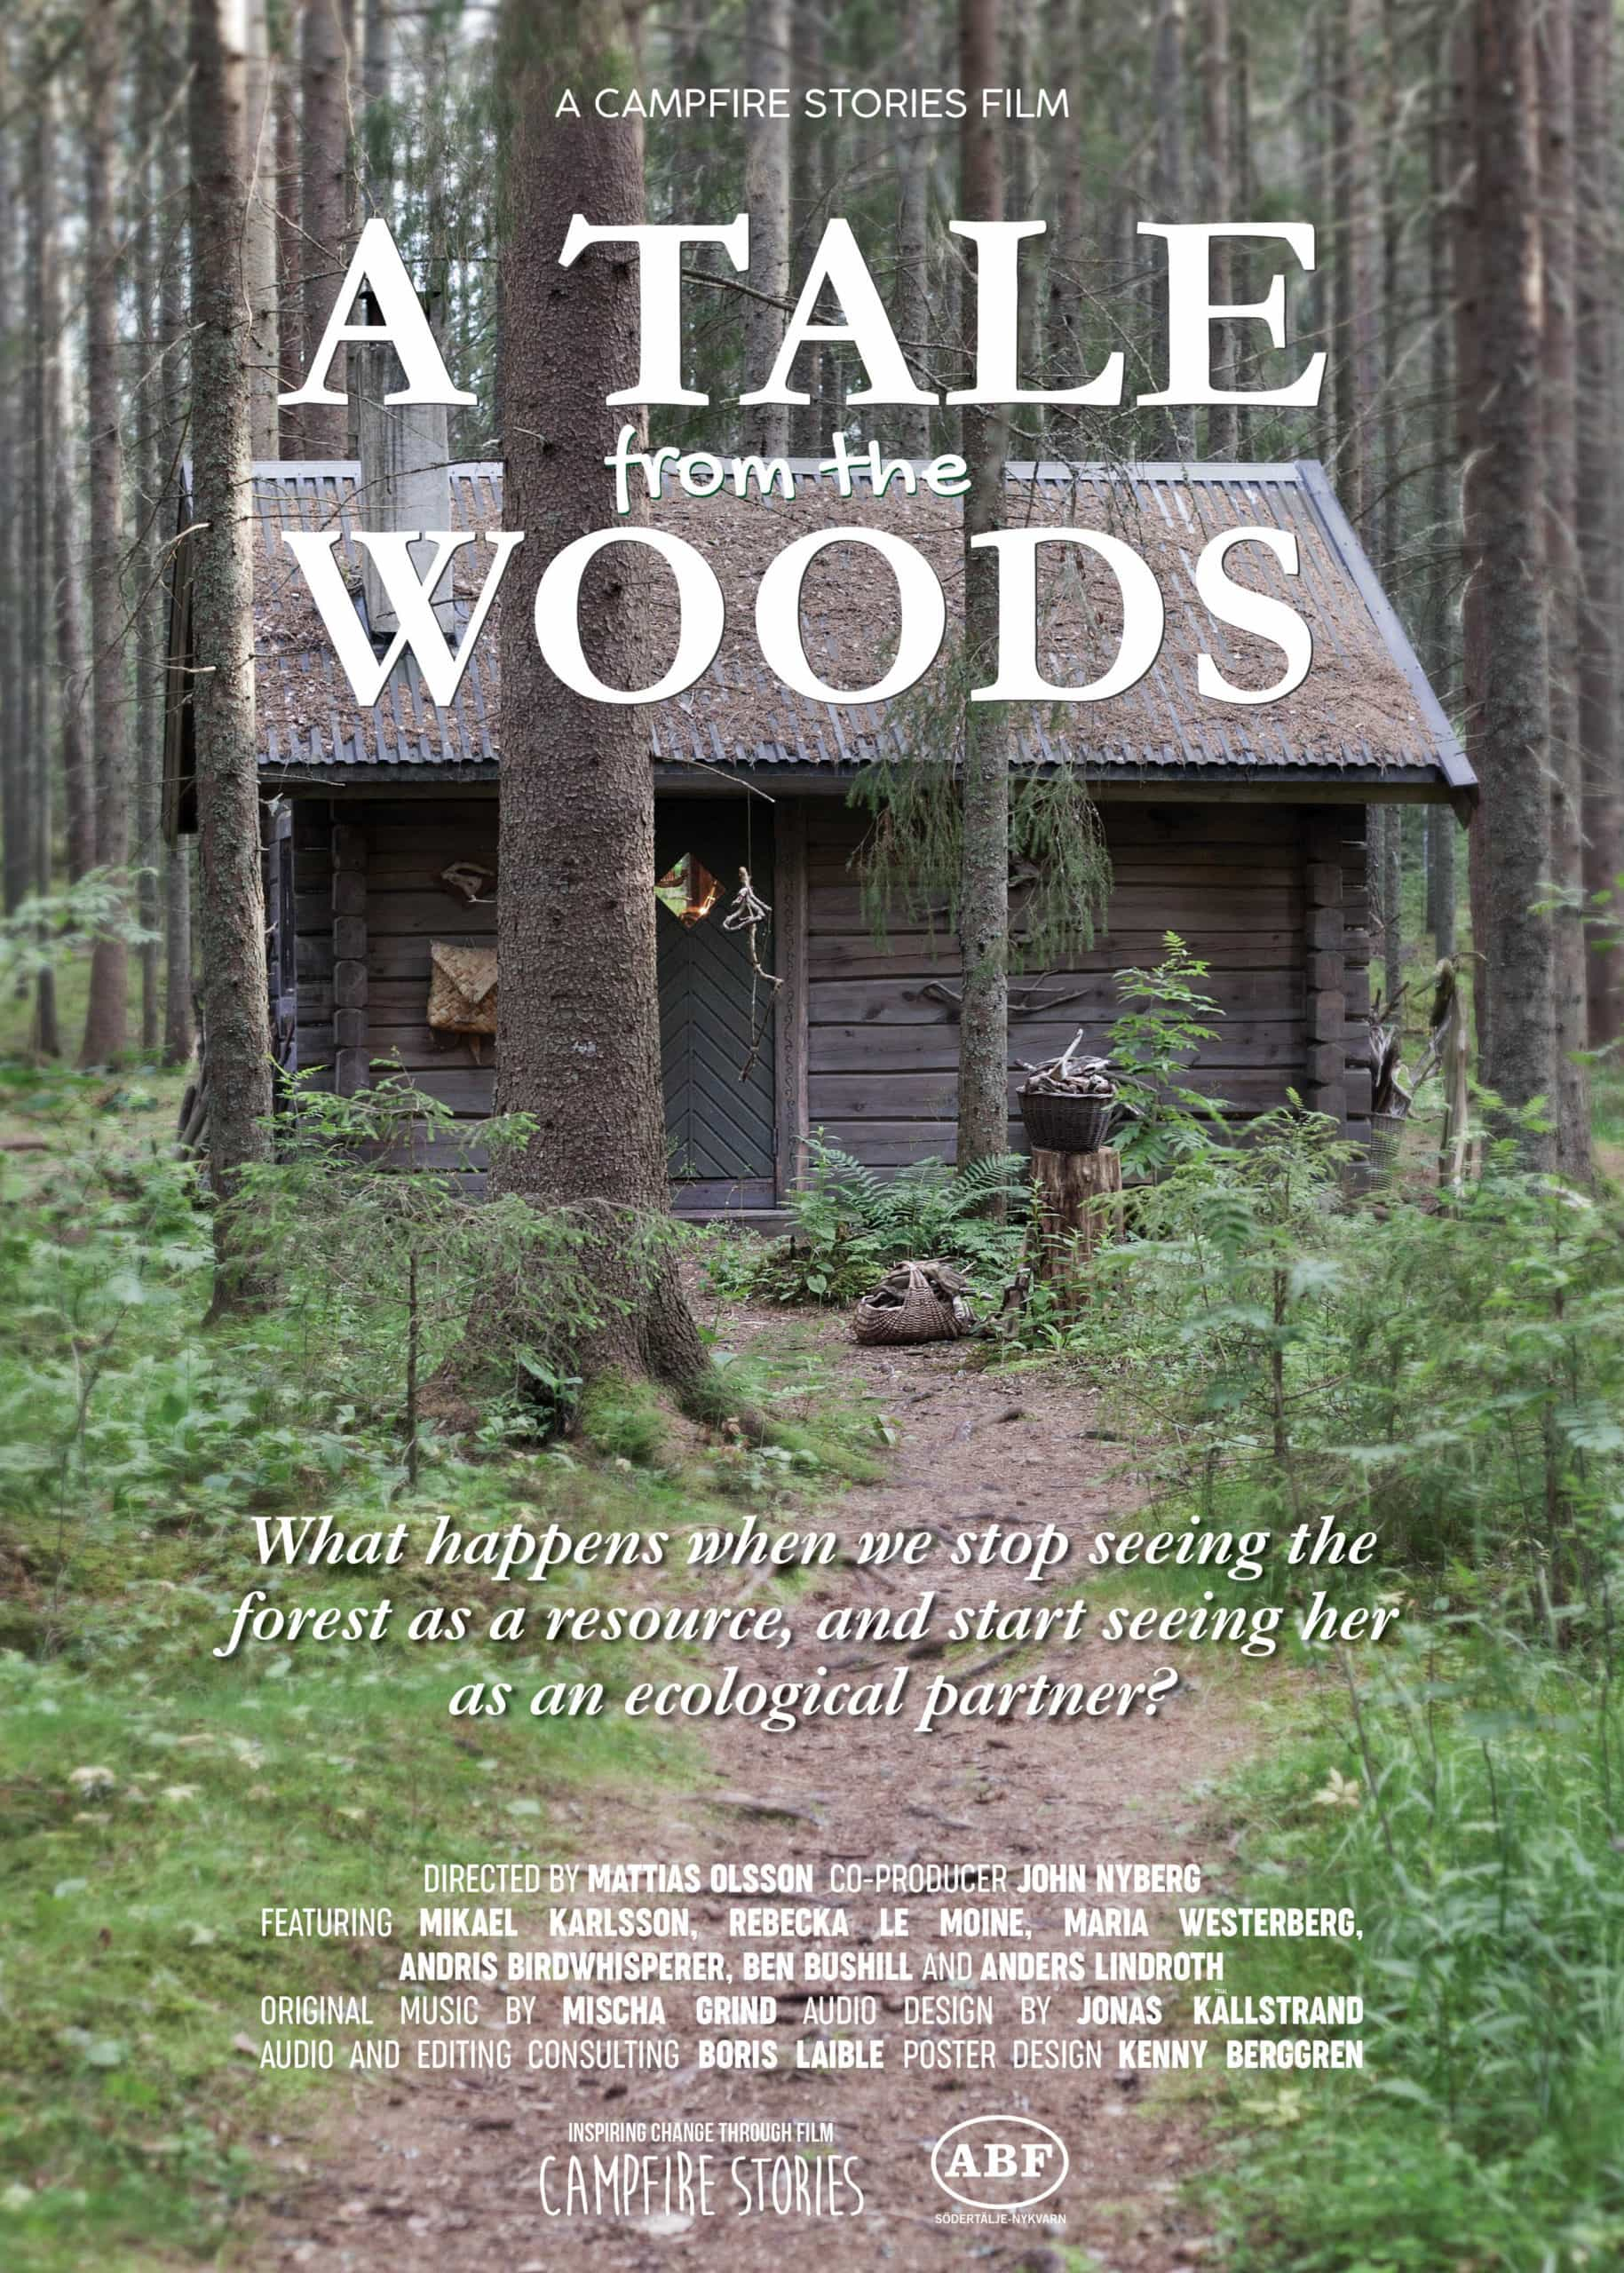 poster talefromthewoods webb scaled